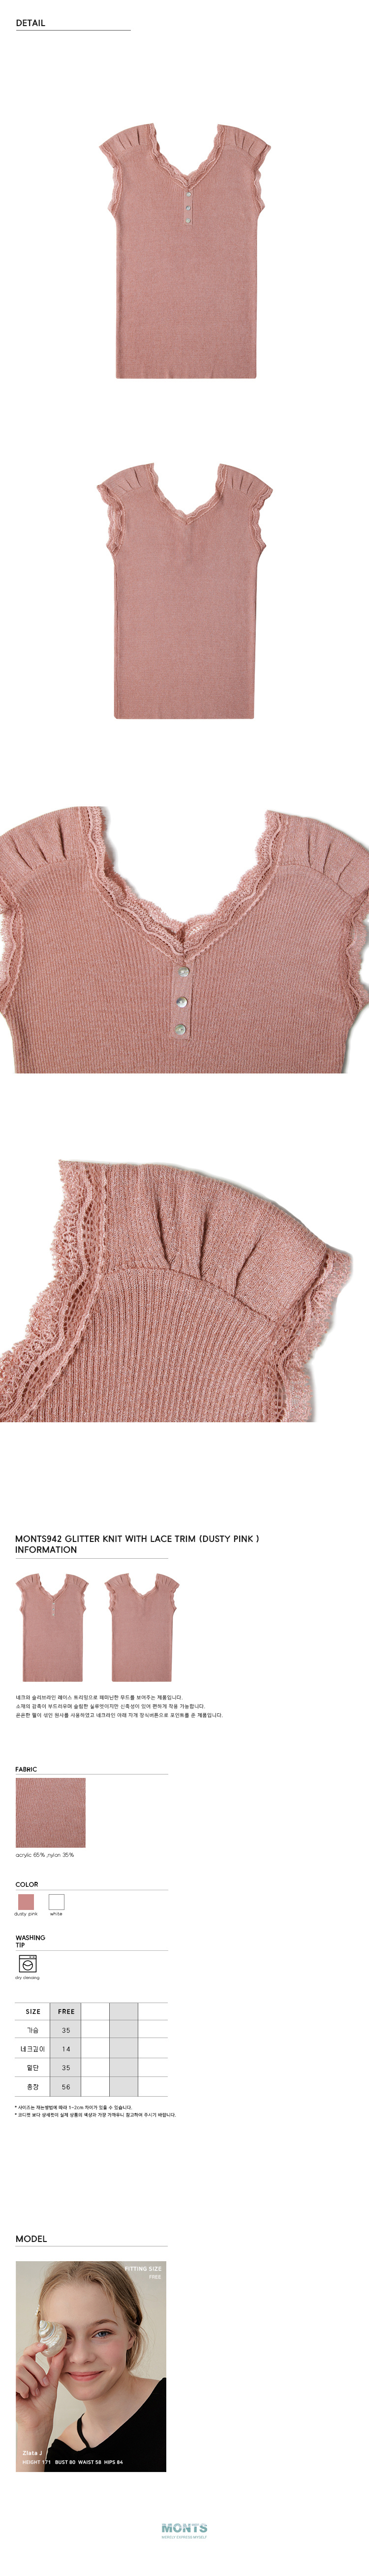 몬츠(MONTS) 942 glitter knit with lace trim (dusty pink)